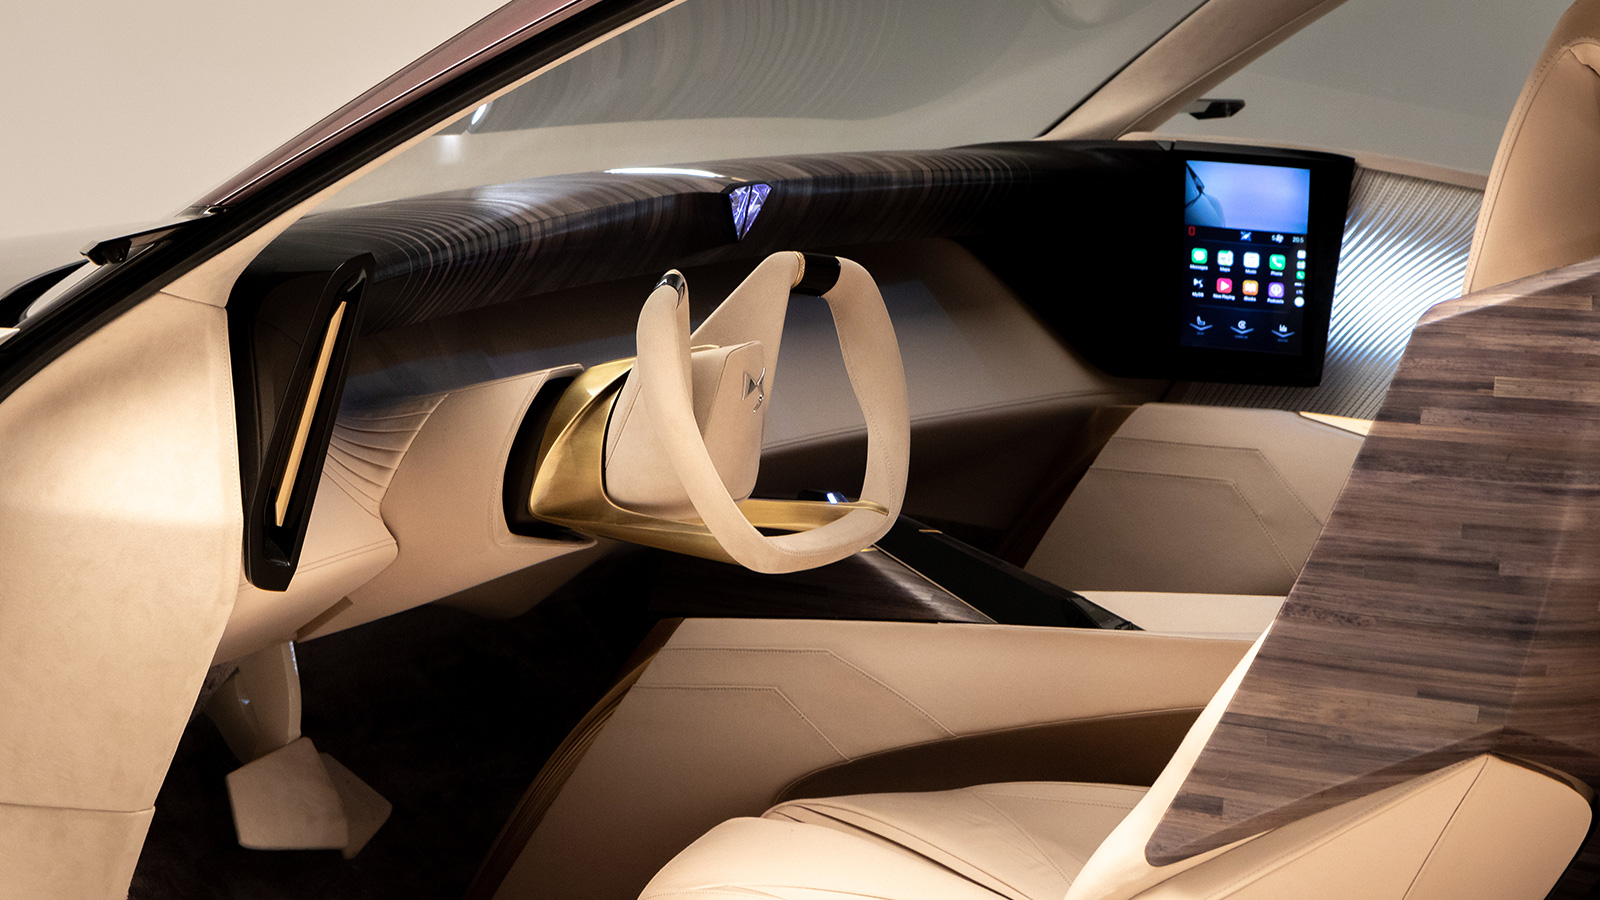 DS Automobiles gesture control inside future car